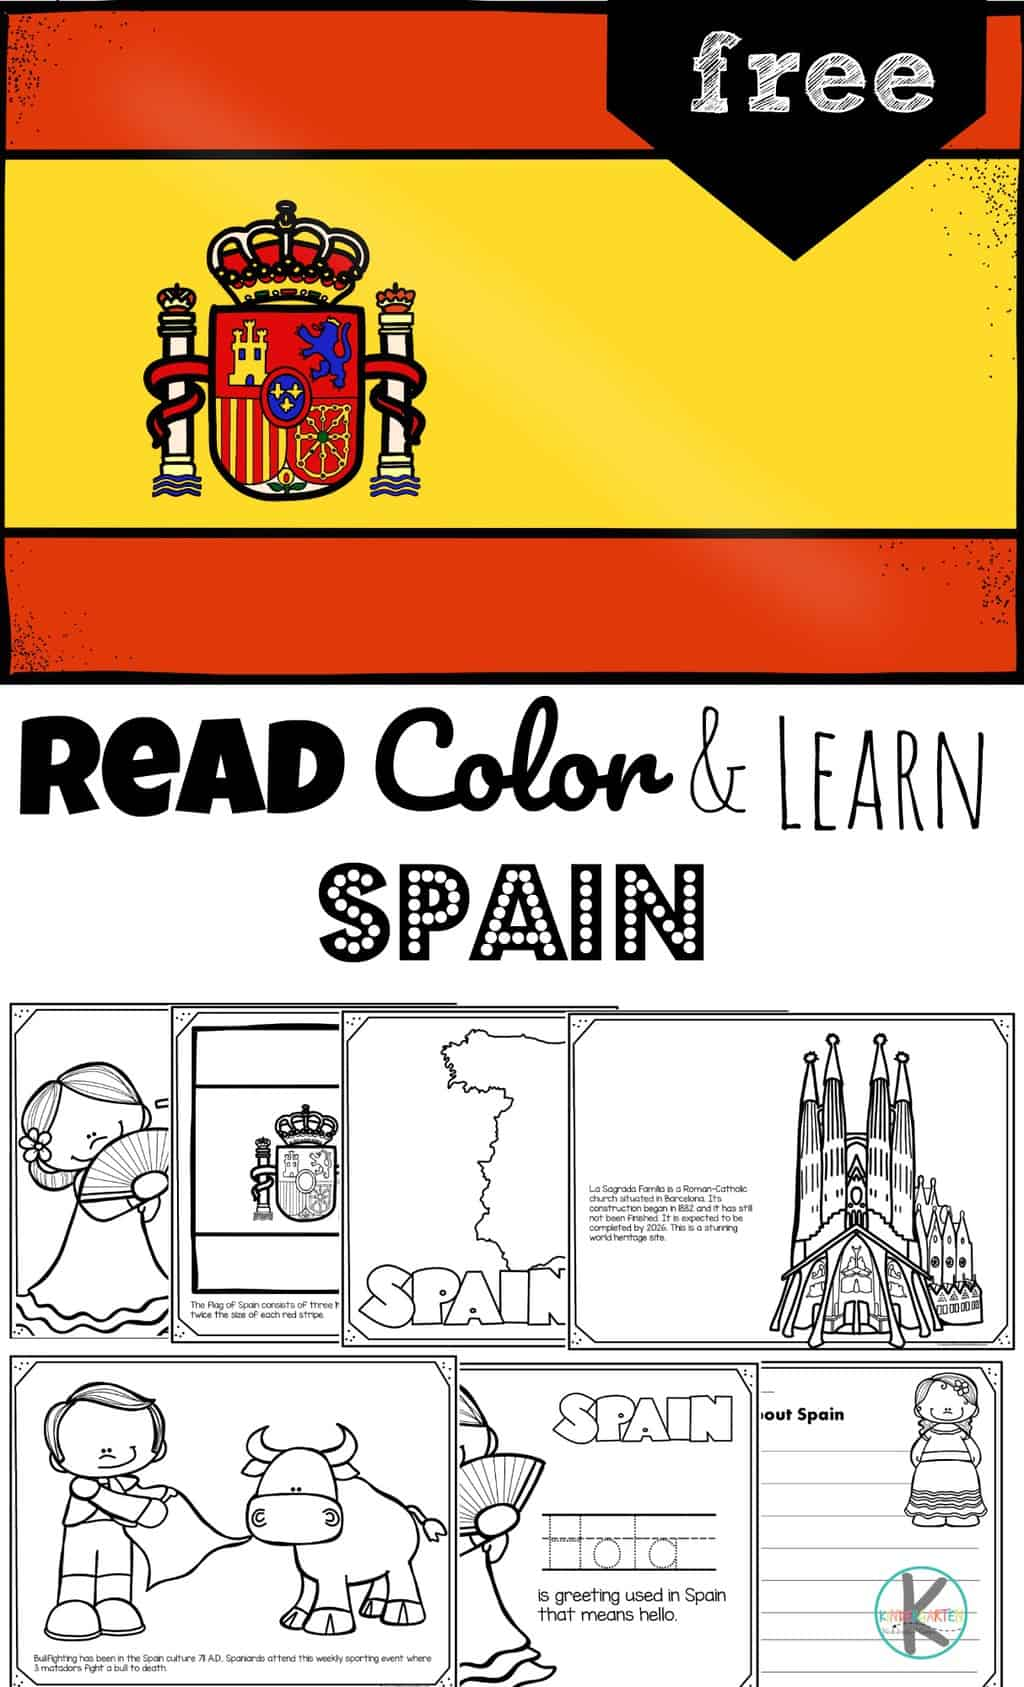 Free Read Color And Learn About Spain